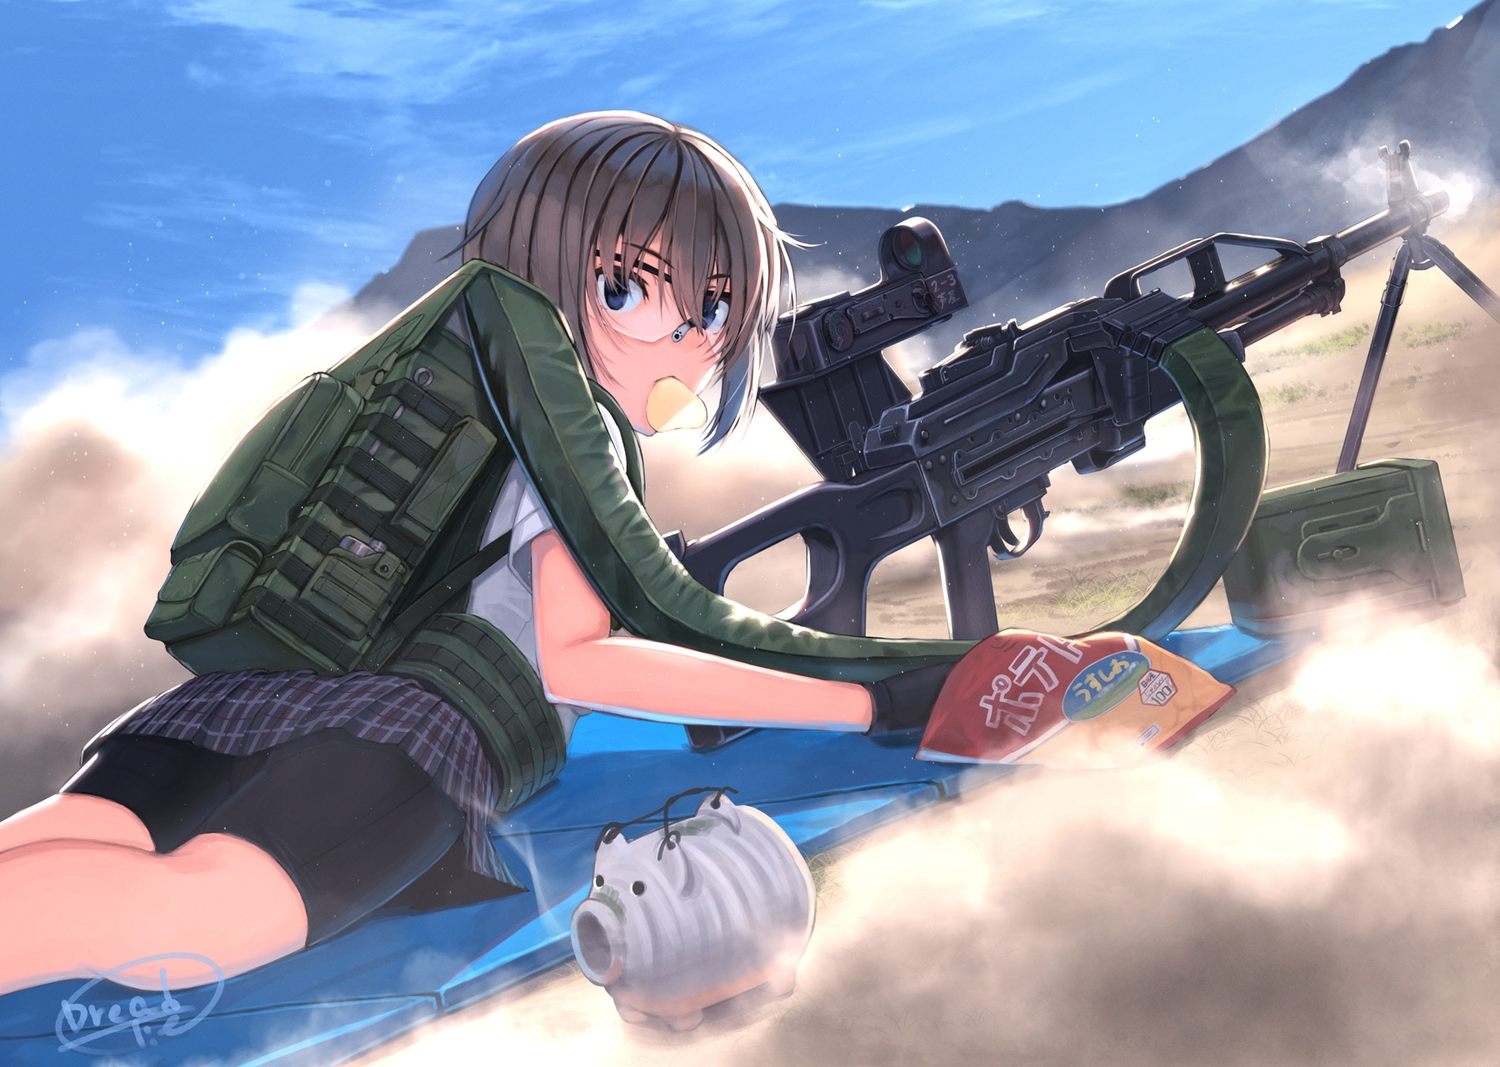 bike_shorts black_hair blue_eyes clouds dreadtie food glasses gloves gun jpeg_artifacts original short_hair shorts signed skirt sky weapon